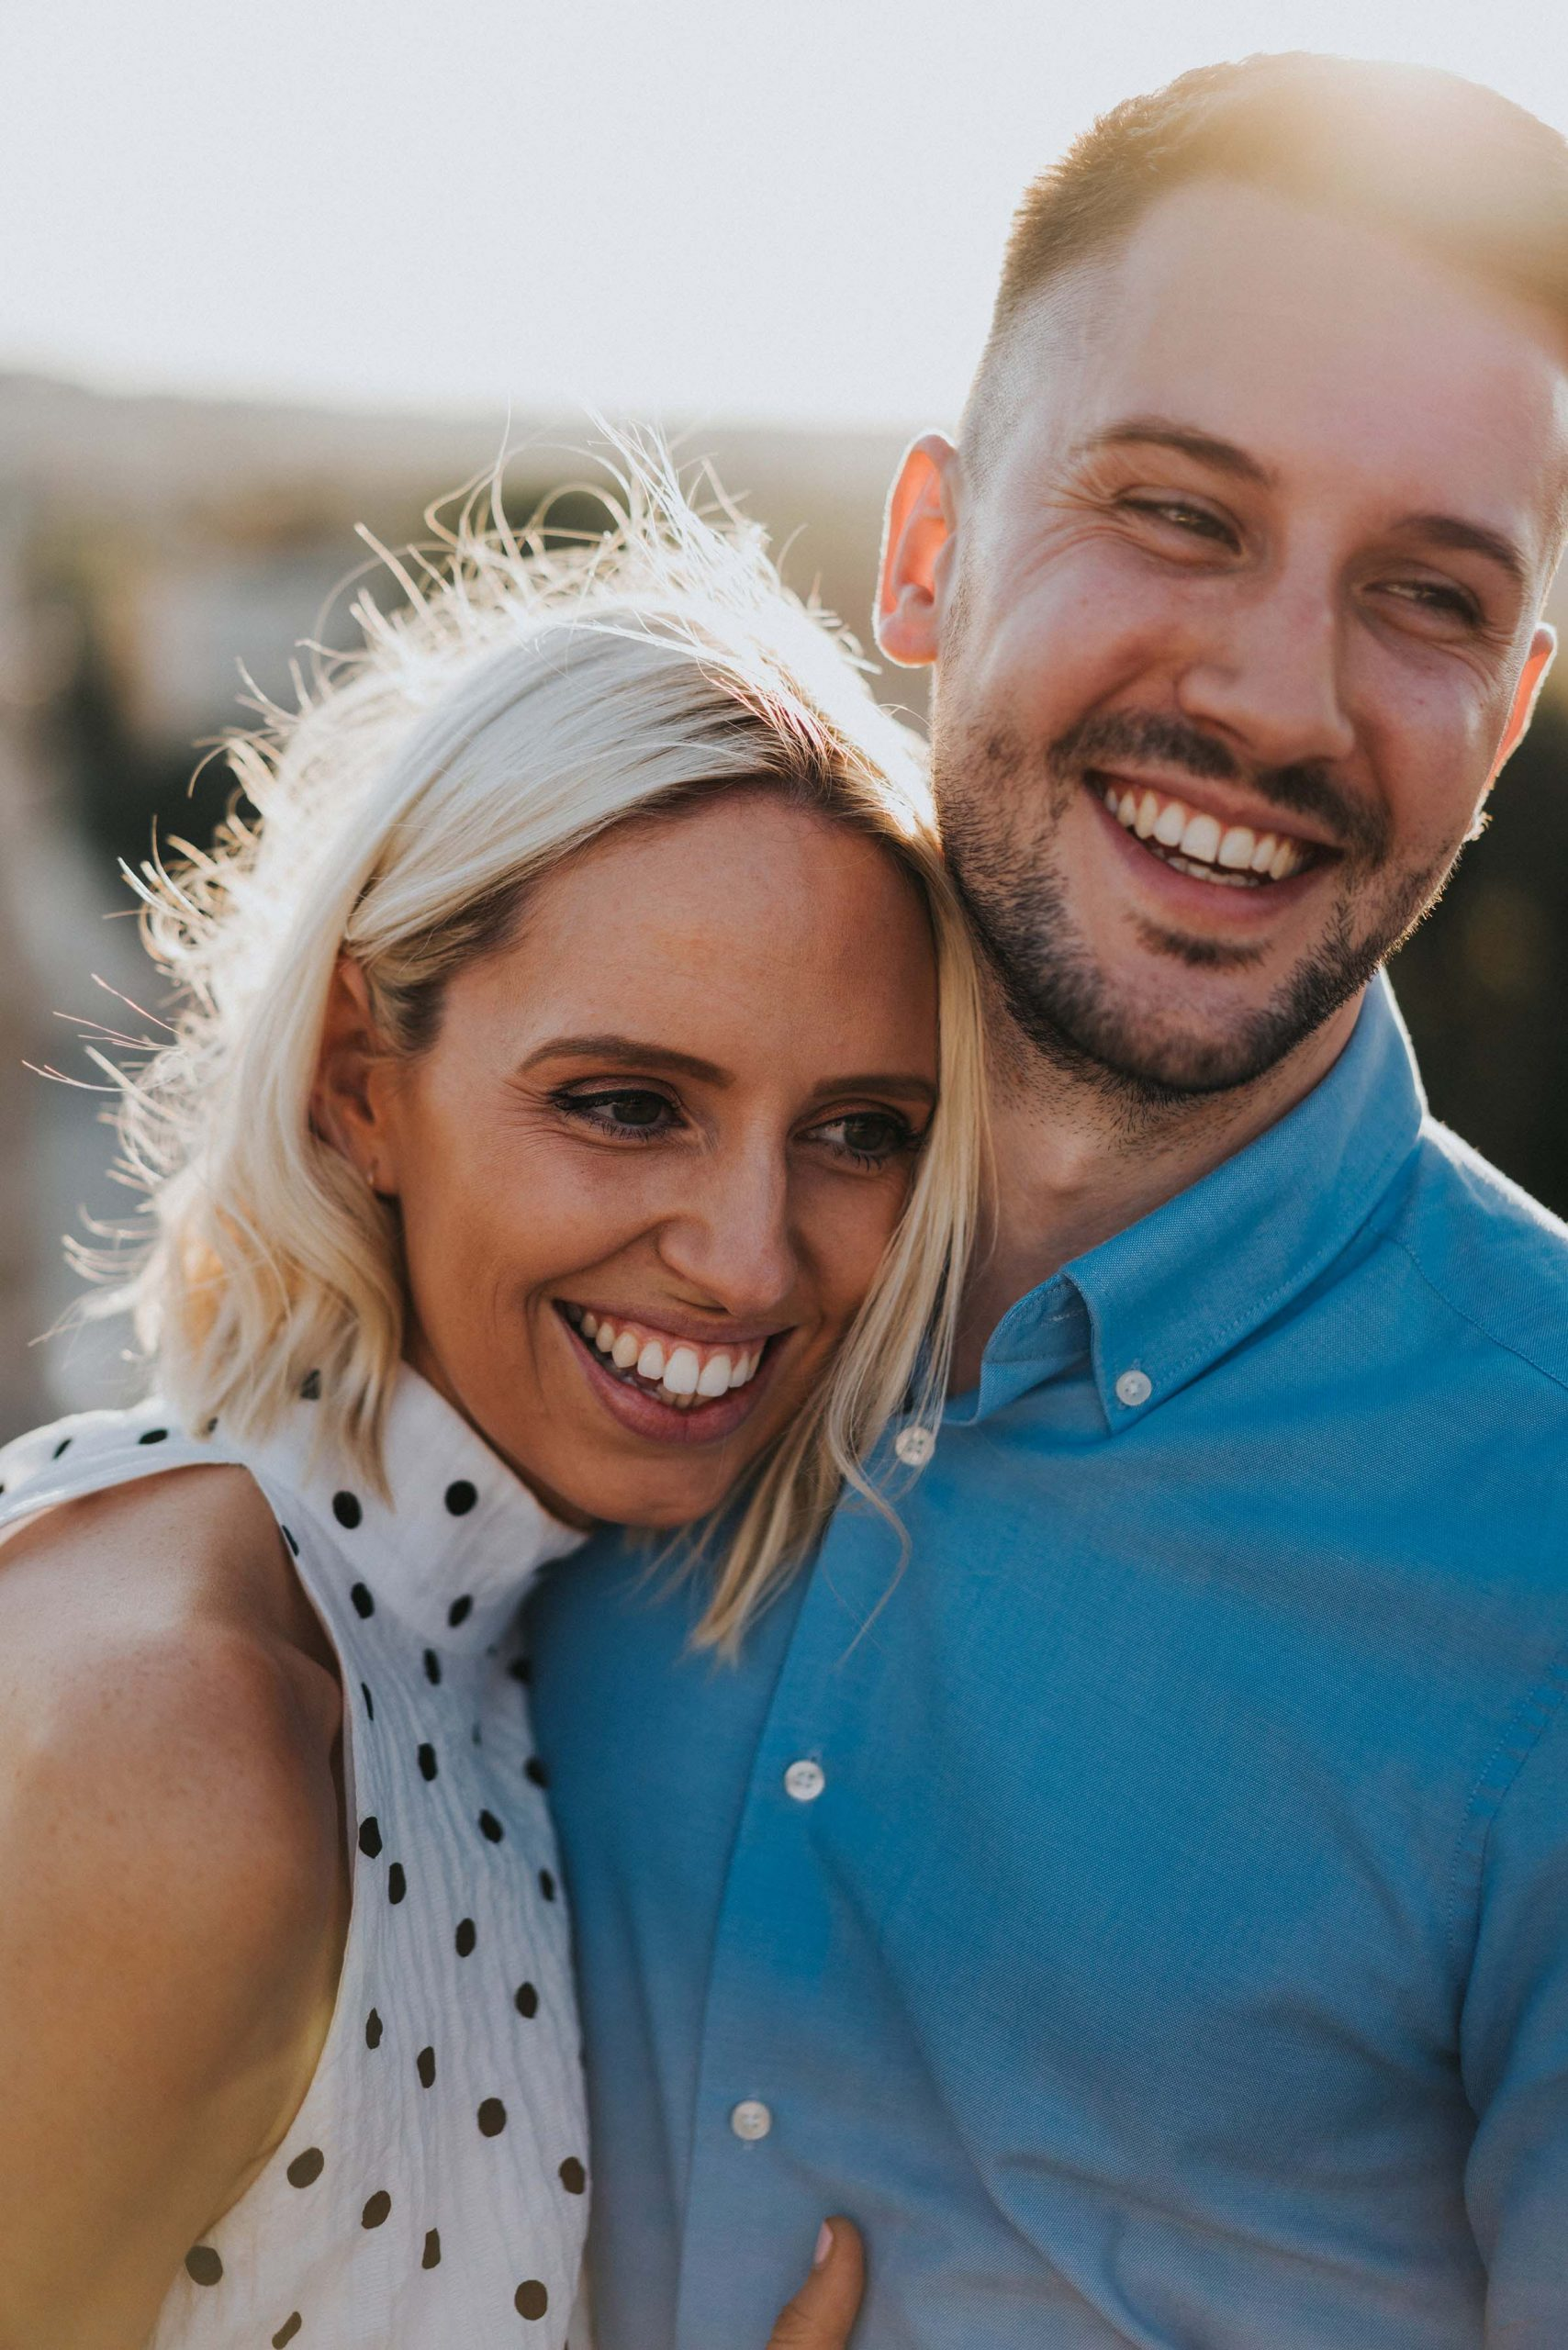 portrait photo couple laughing looking natural